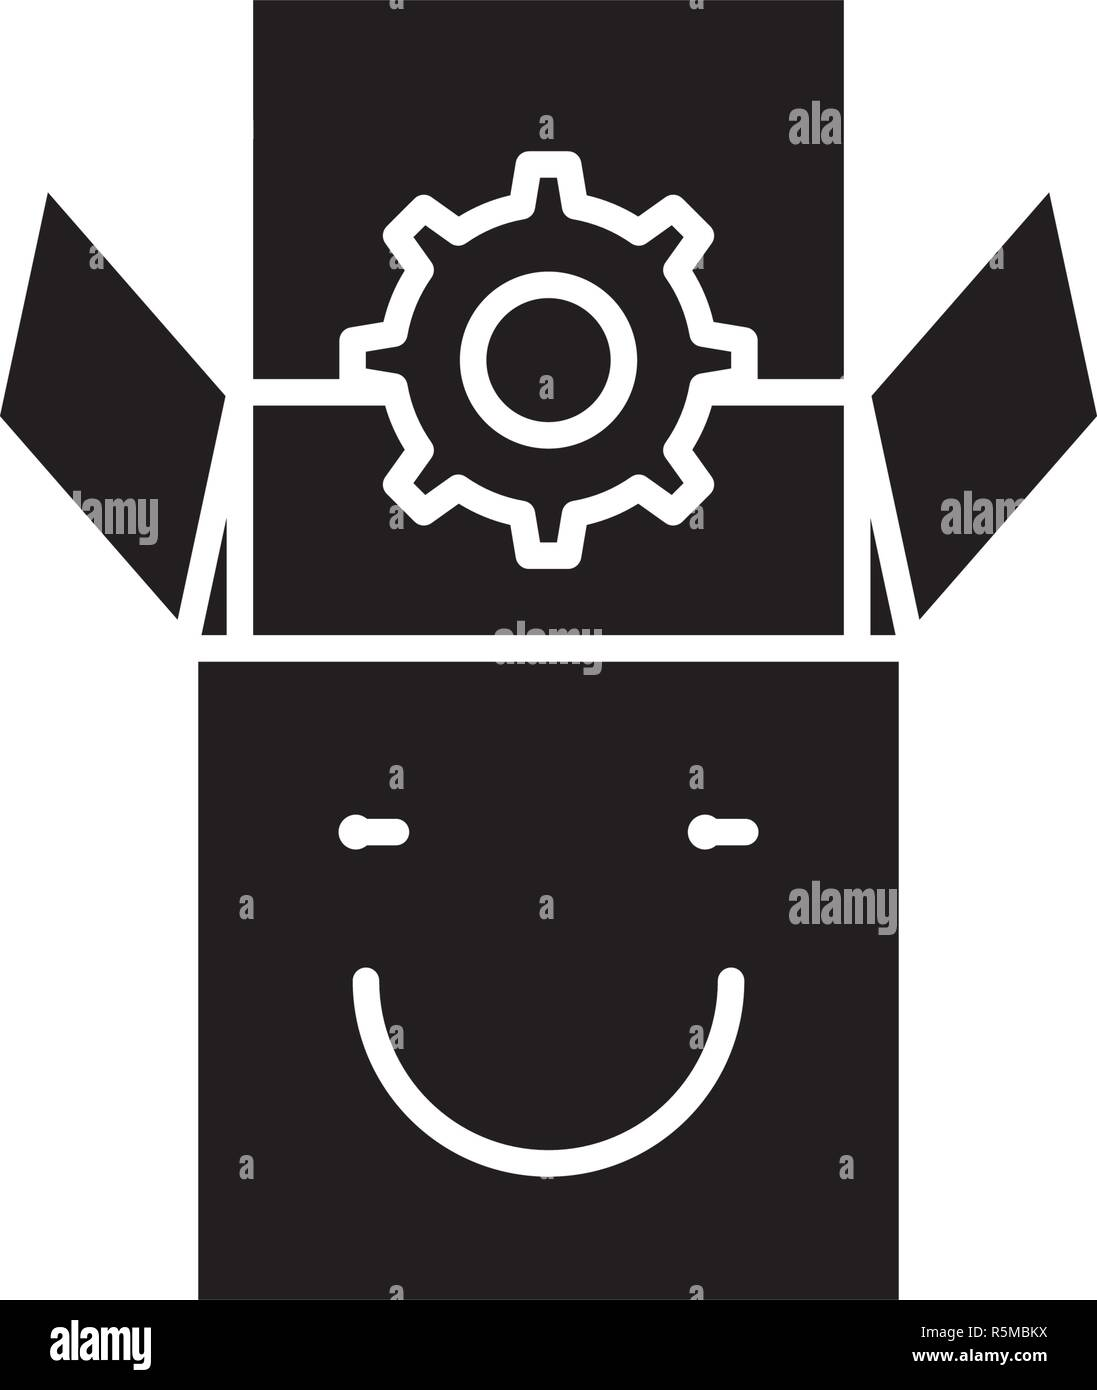 Product satisfaction black icon, vector sign on isolated background. Product satisfaction concept symbol, illustration  - Stock Vector